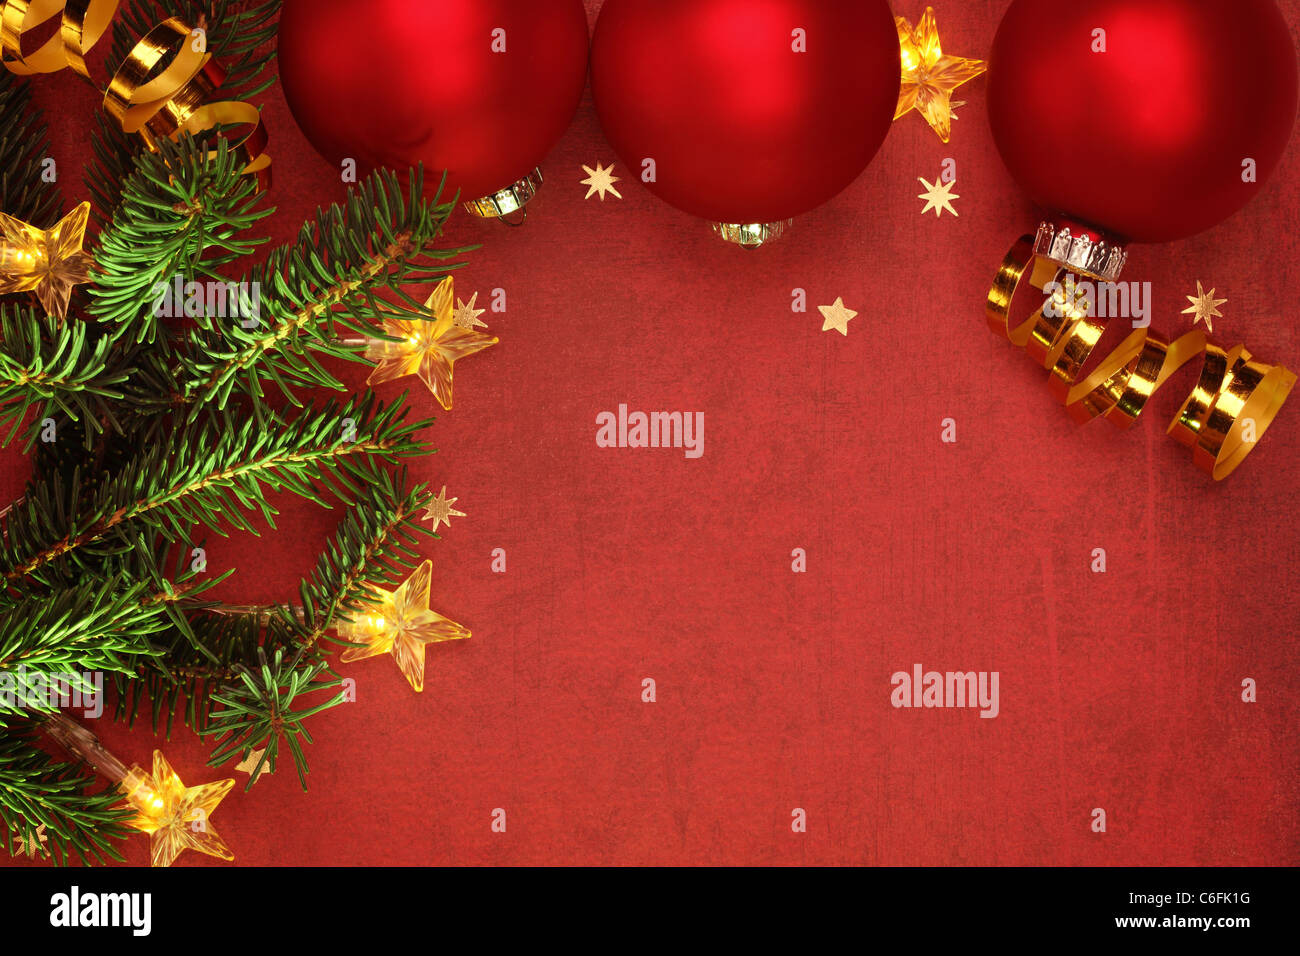 Christmas ornaments and electric lights on grunge background - Stock Image